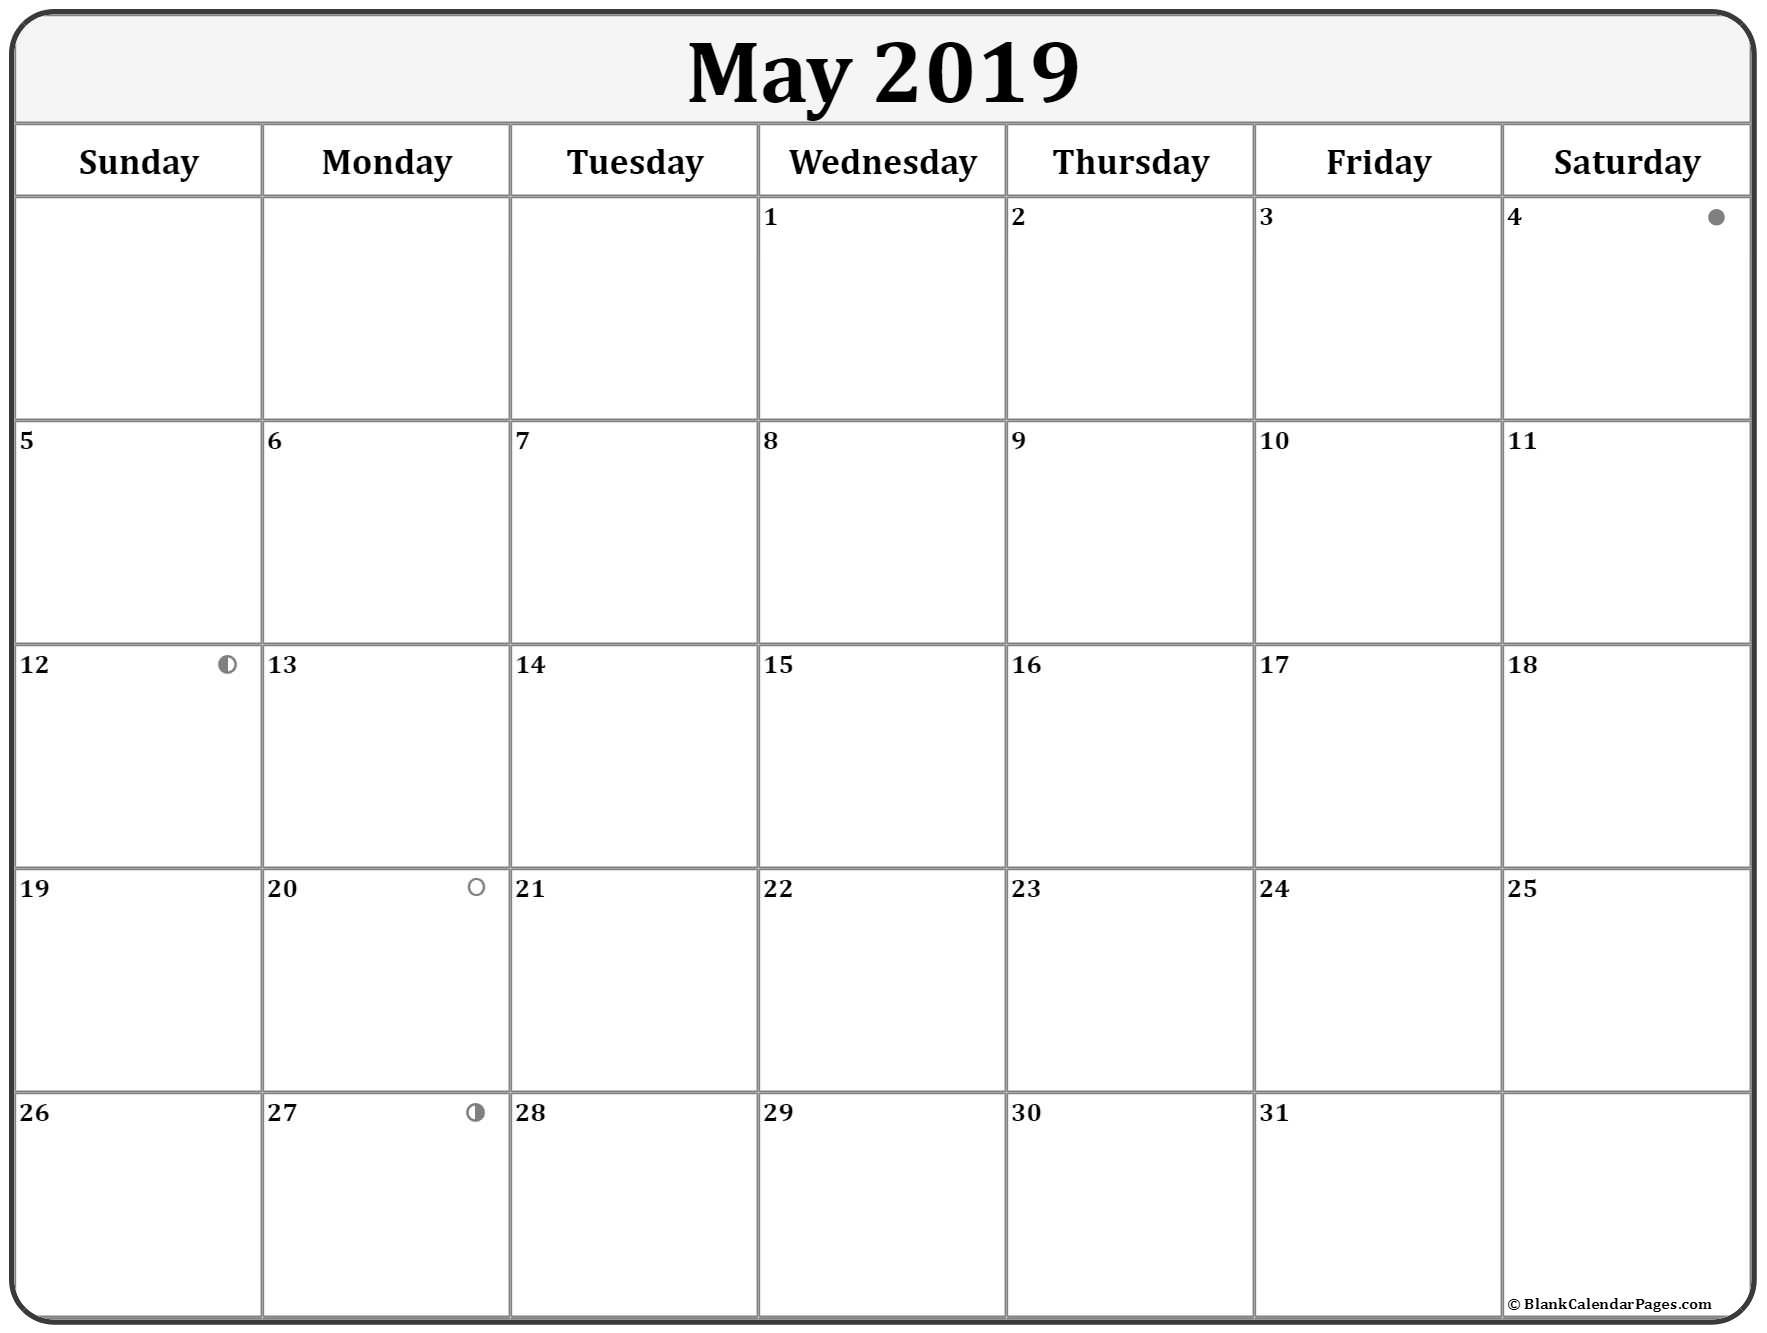 May 2019 Calendar With 4 Simple Moon Phases Moon Phase Calendar